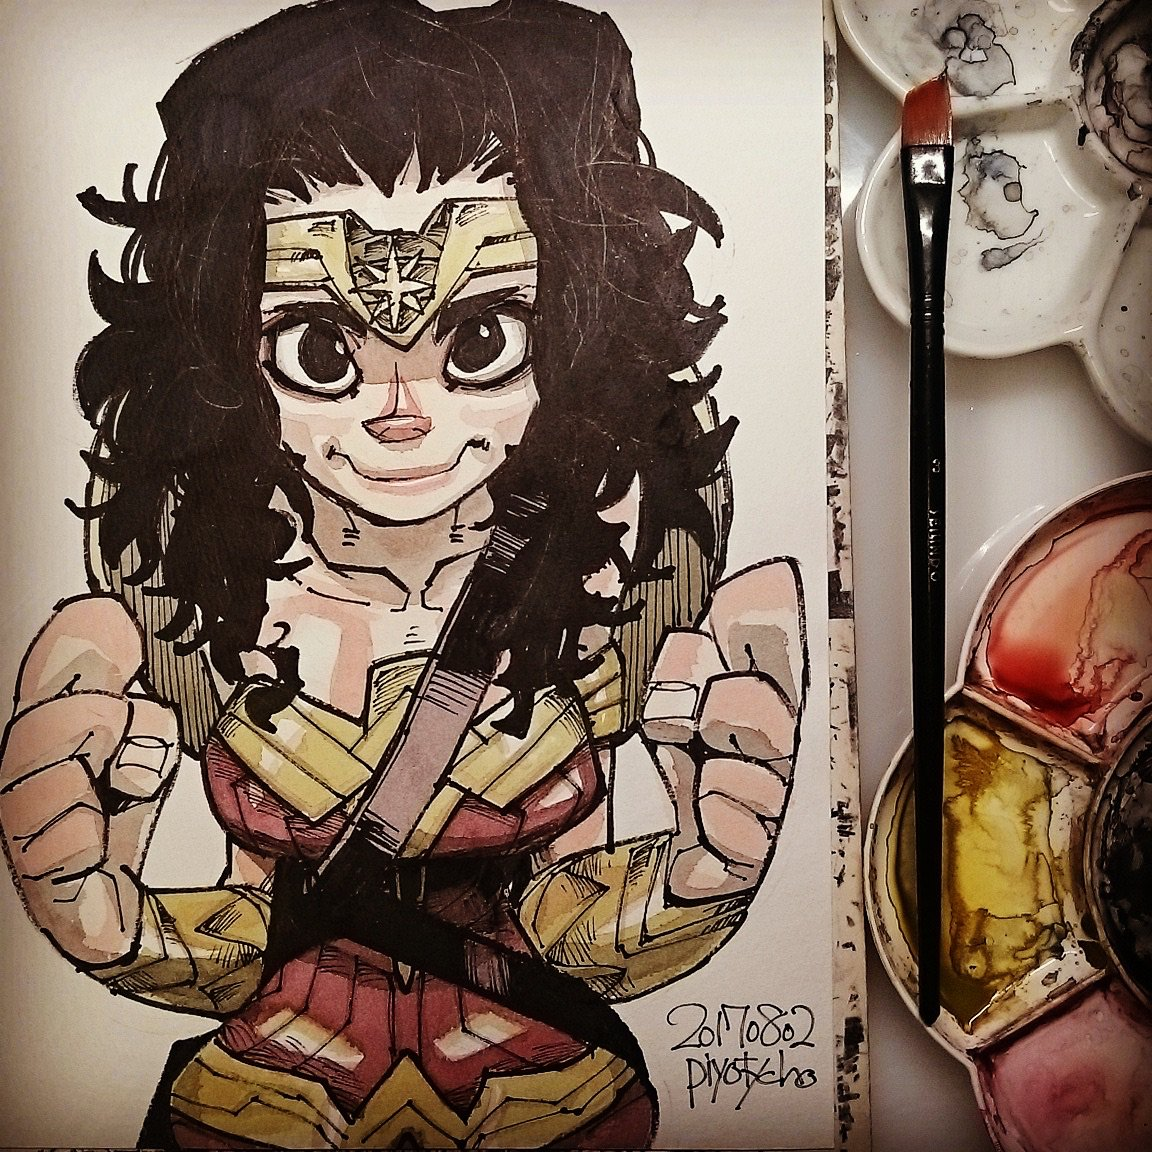 Wonder woman. https://t.co/sdDmxIV6qr